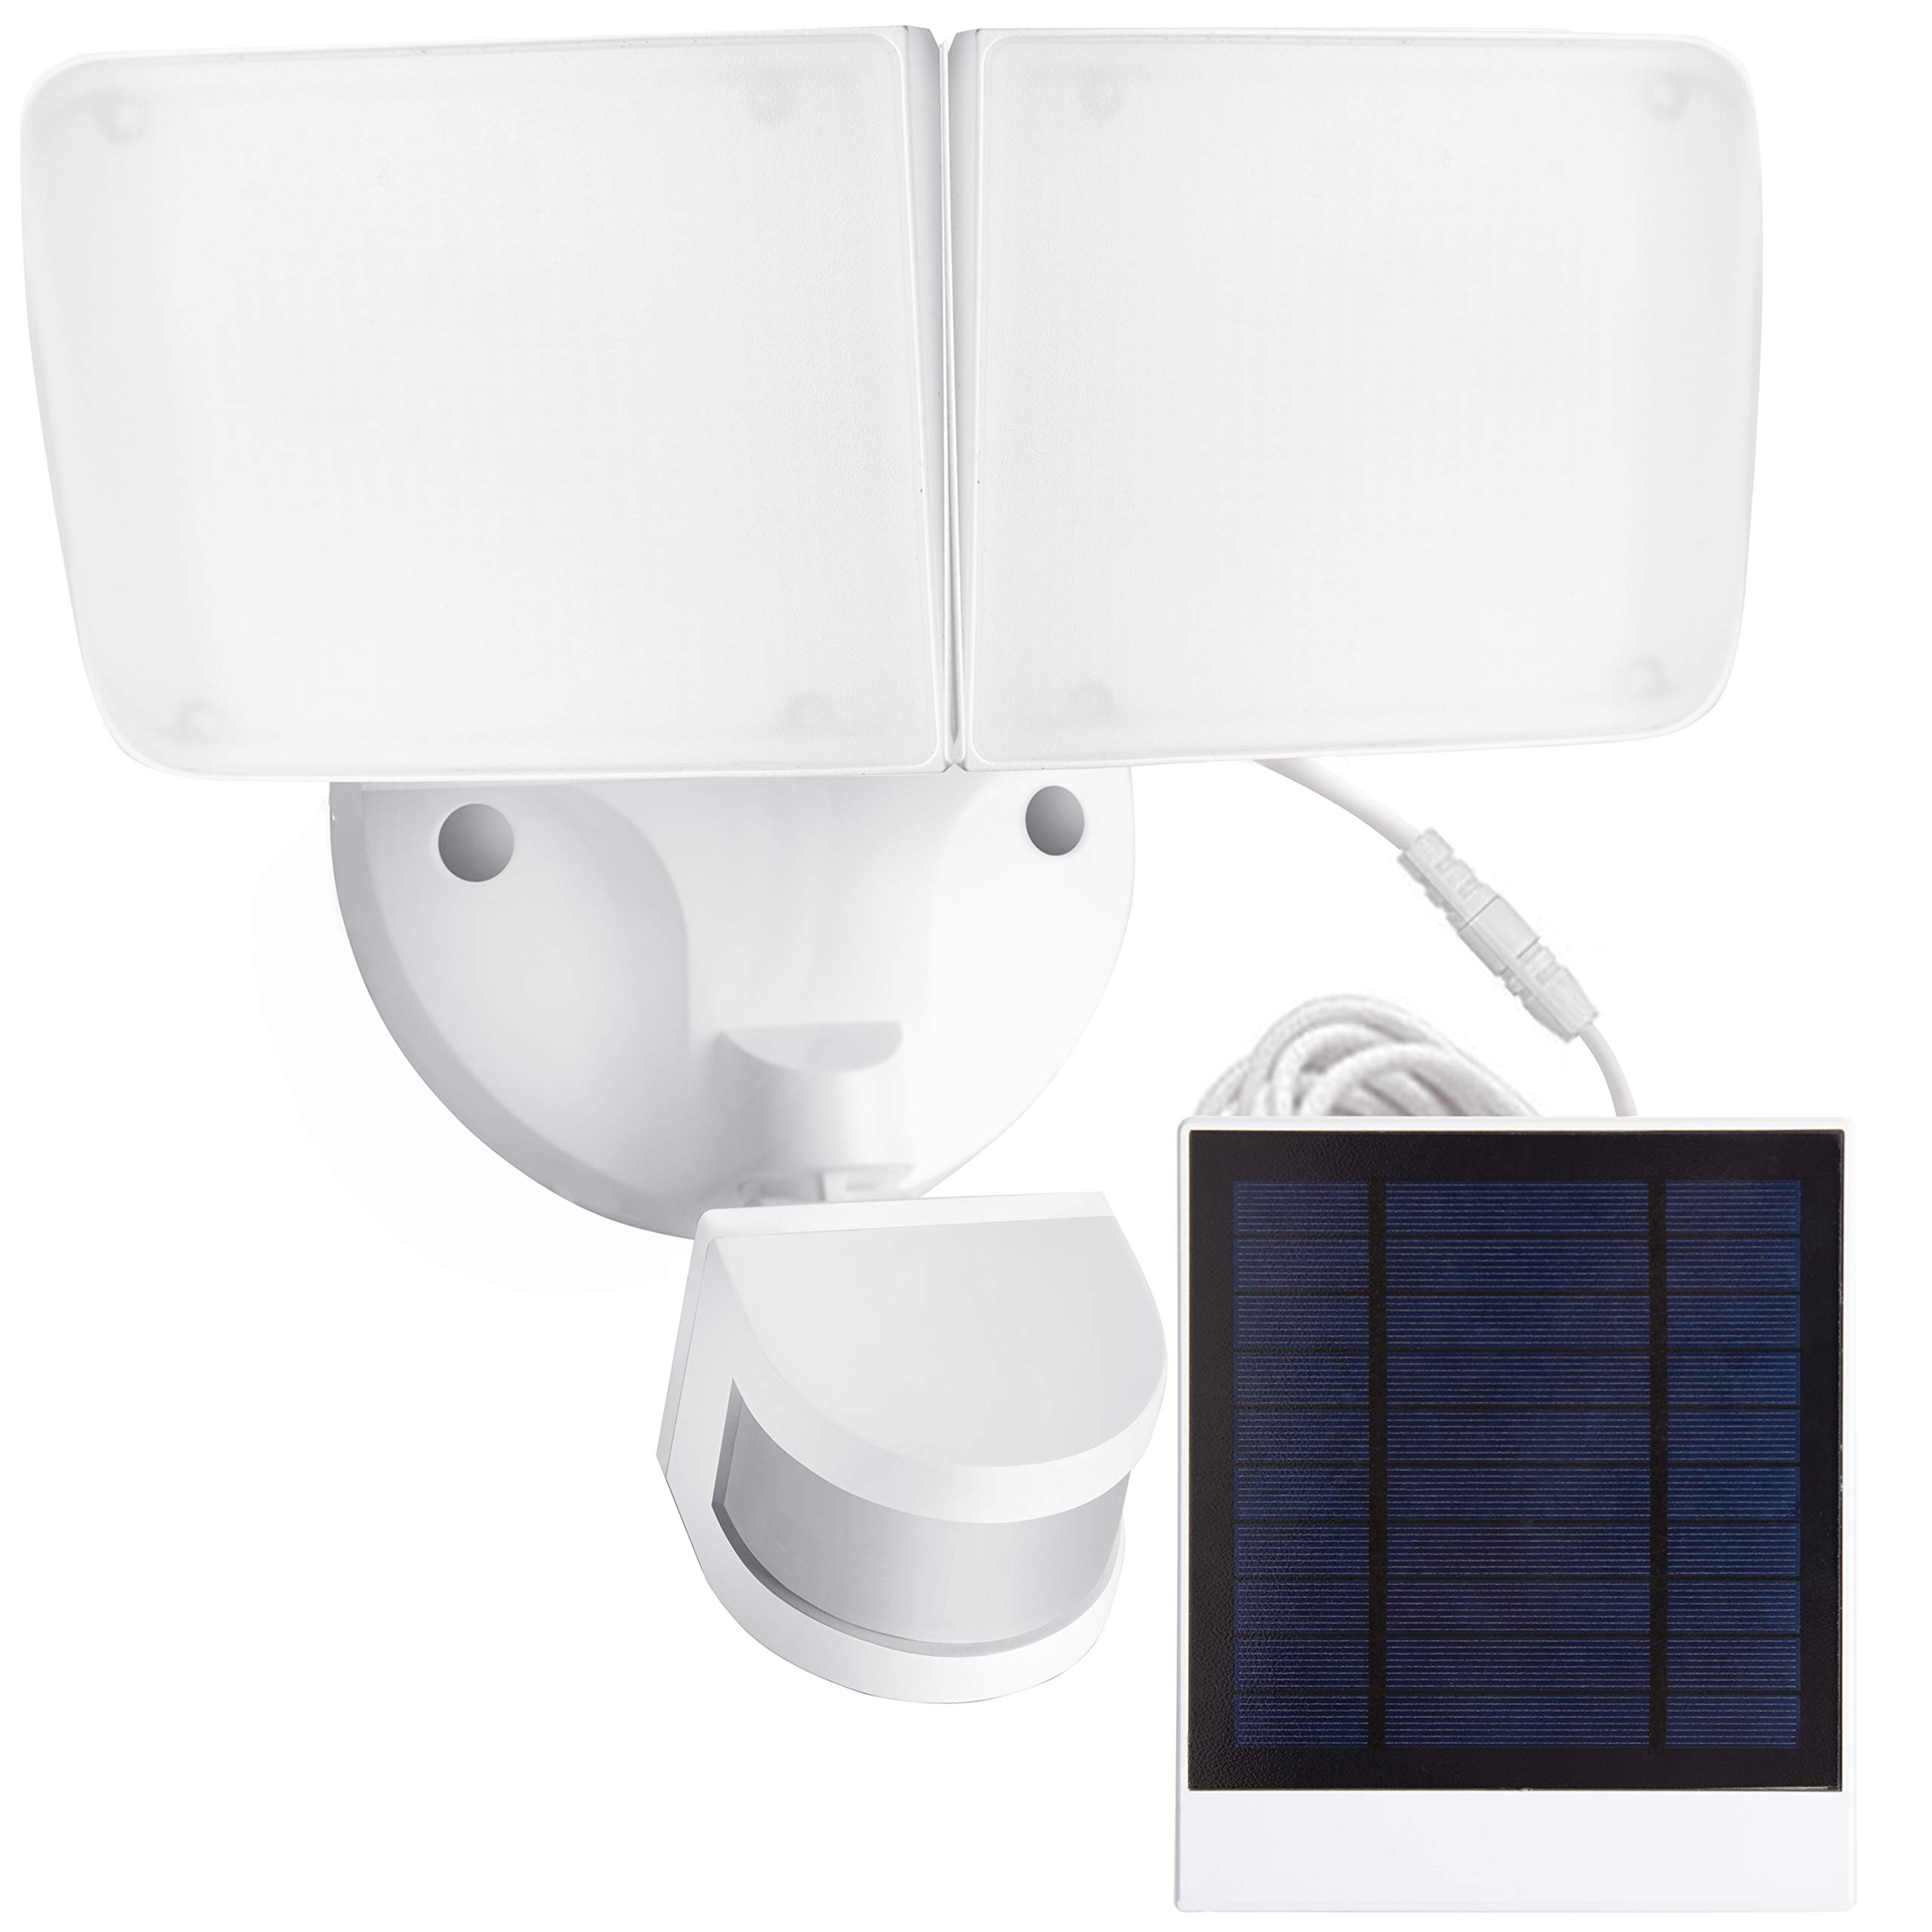 Amico Solar LED Security Light, Outdoor Motion Sensor Light, 5500K, 1000LM, IP65 Waterproof, Adjustable Head Flood Light with 2 Modes Automatic and Permanent on, for Entryways, Patio, Yard by Amico